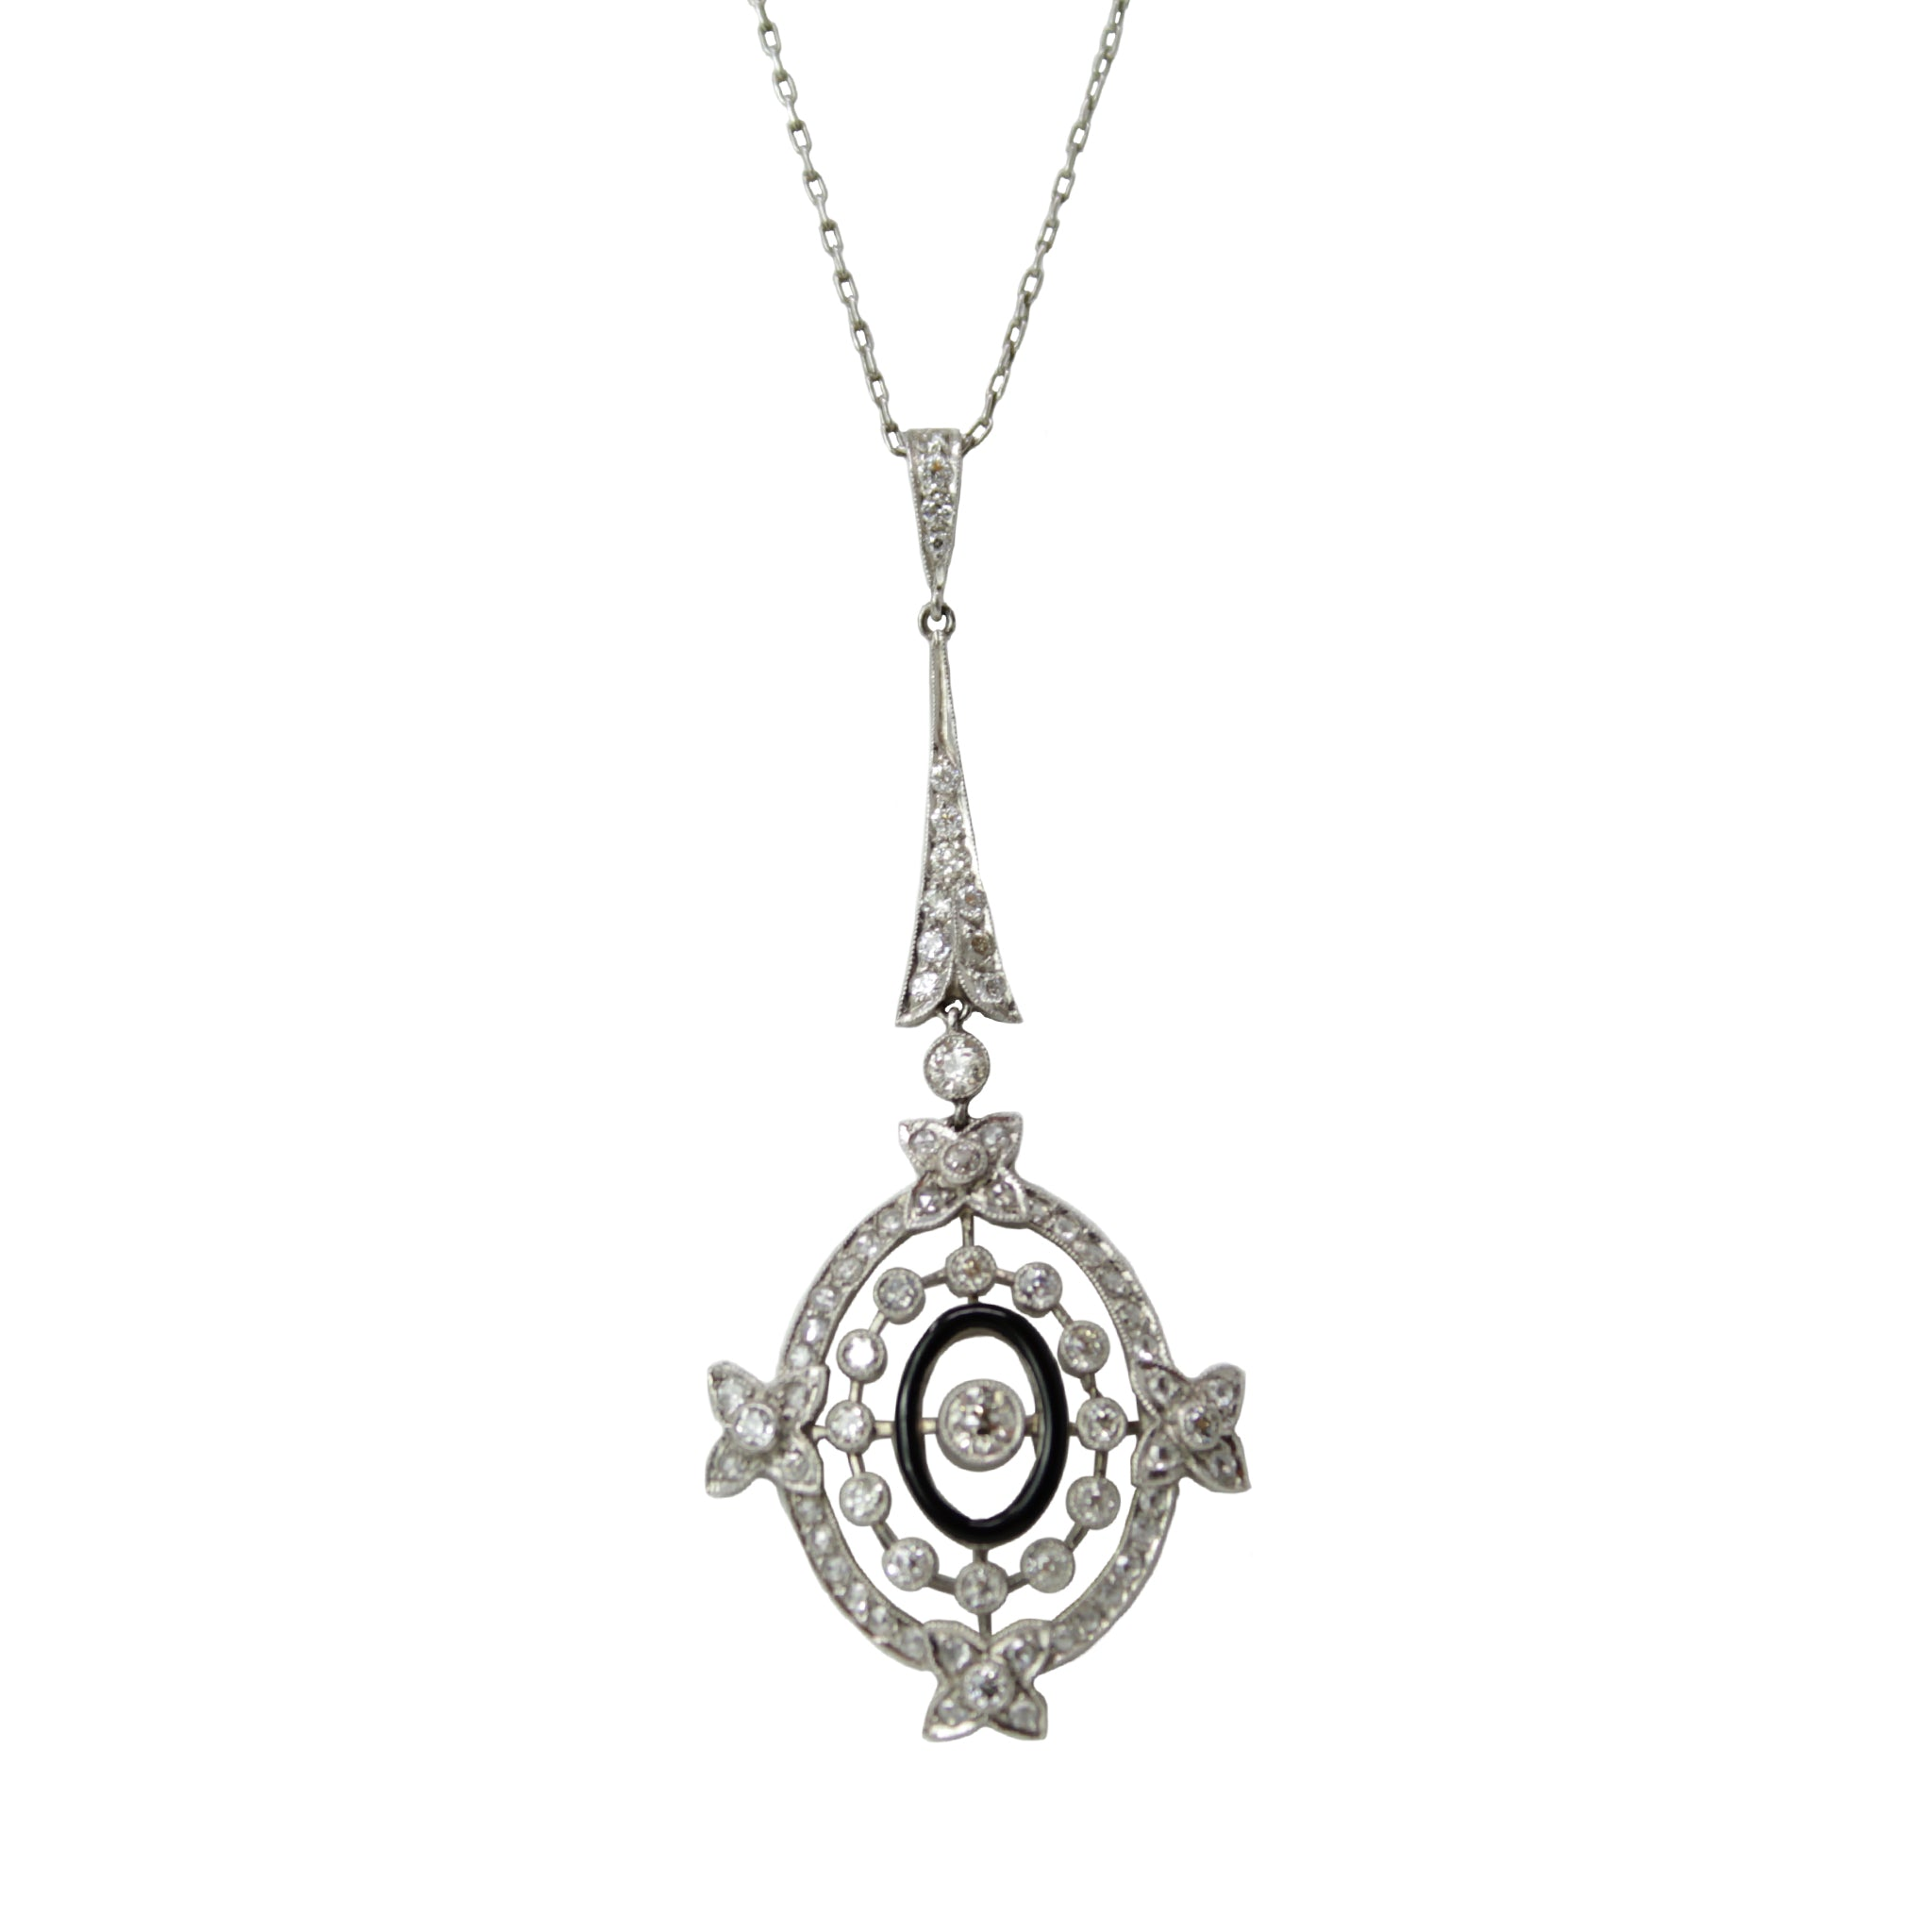 Bewitching Beauty Lavalier Necklace - Victorian Antique Platinum Diamond and Onyx Long Necklace